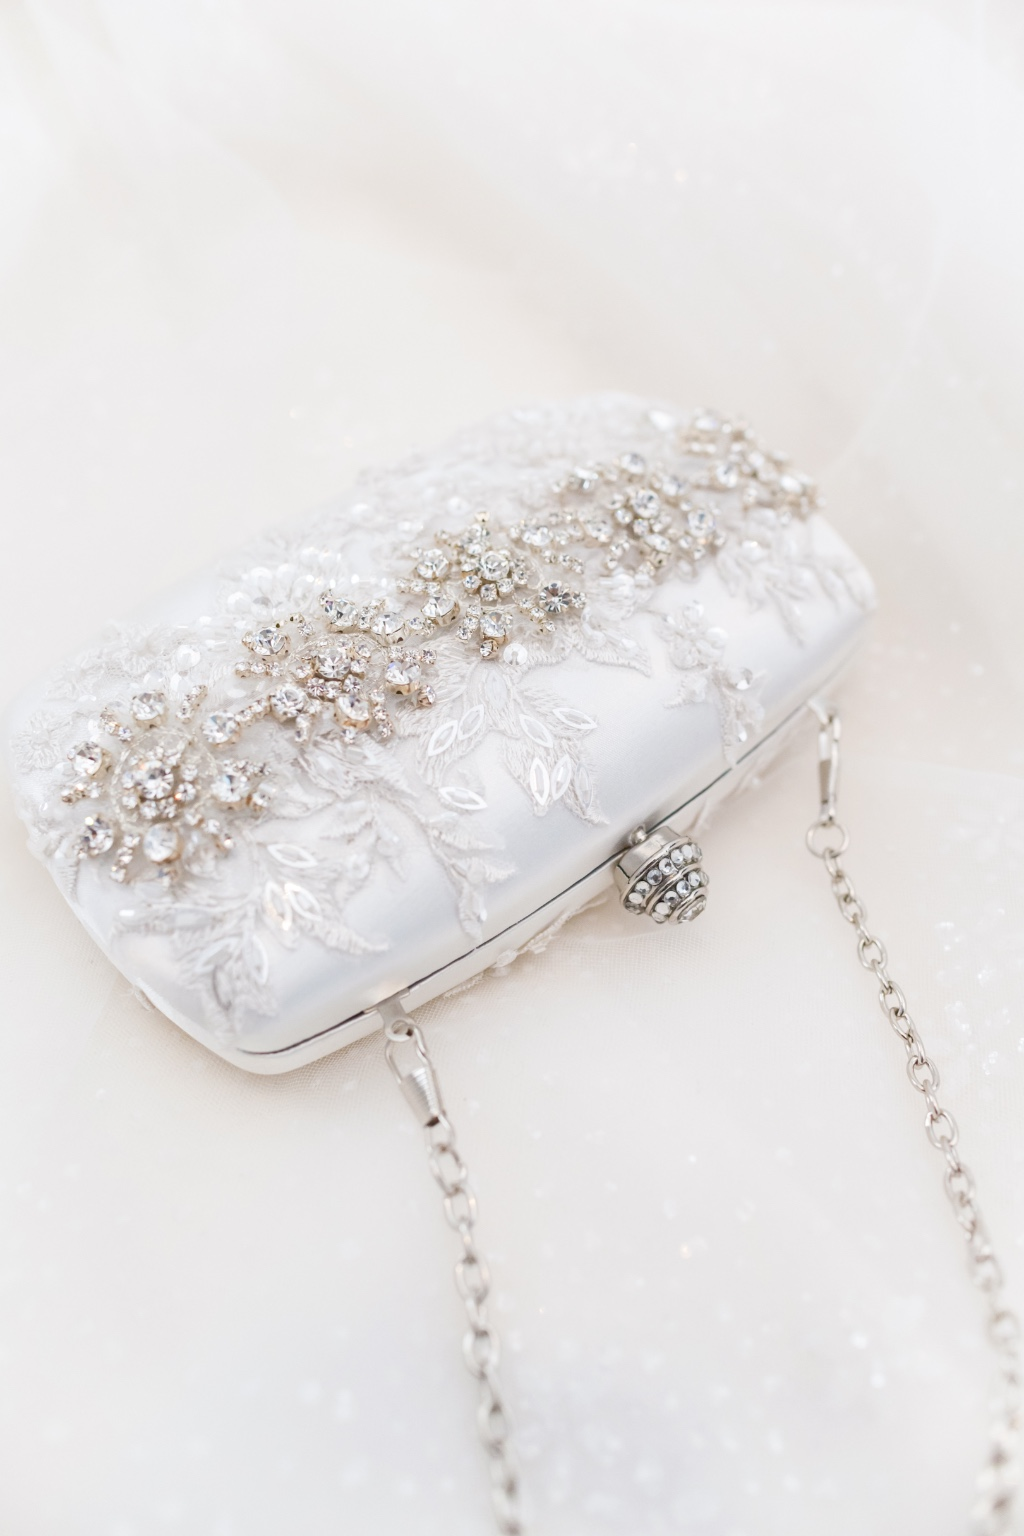 Rhinestone clutches that make a statement at your wedding